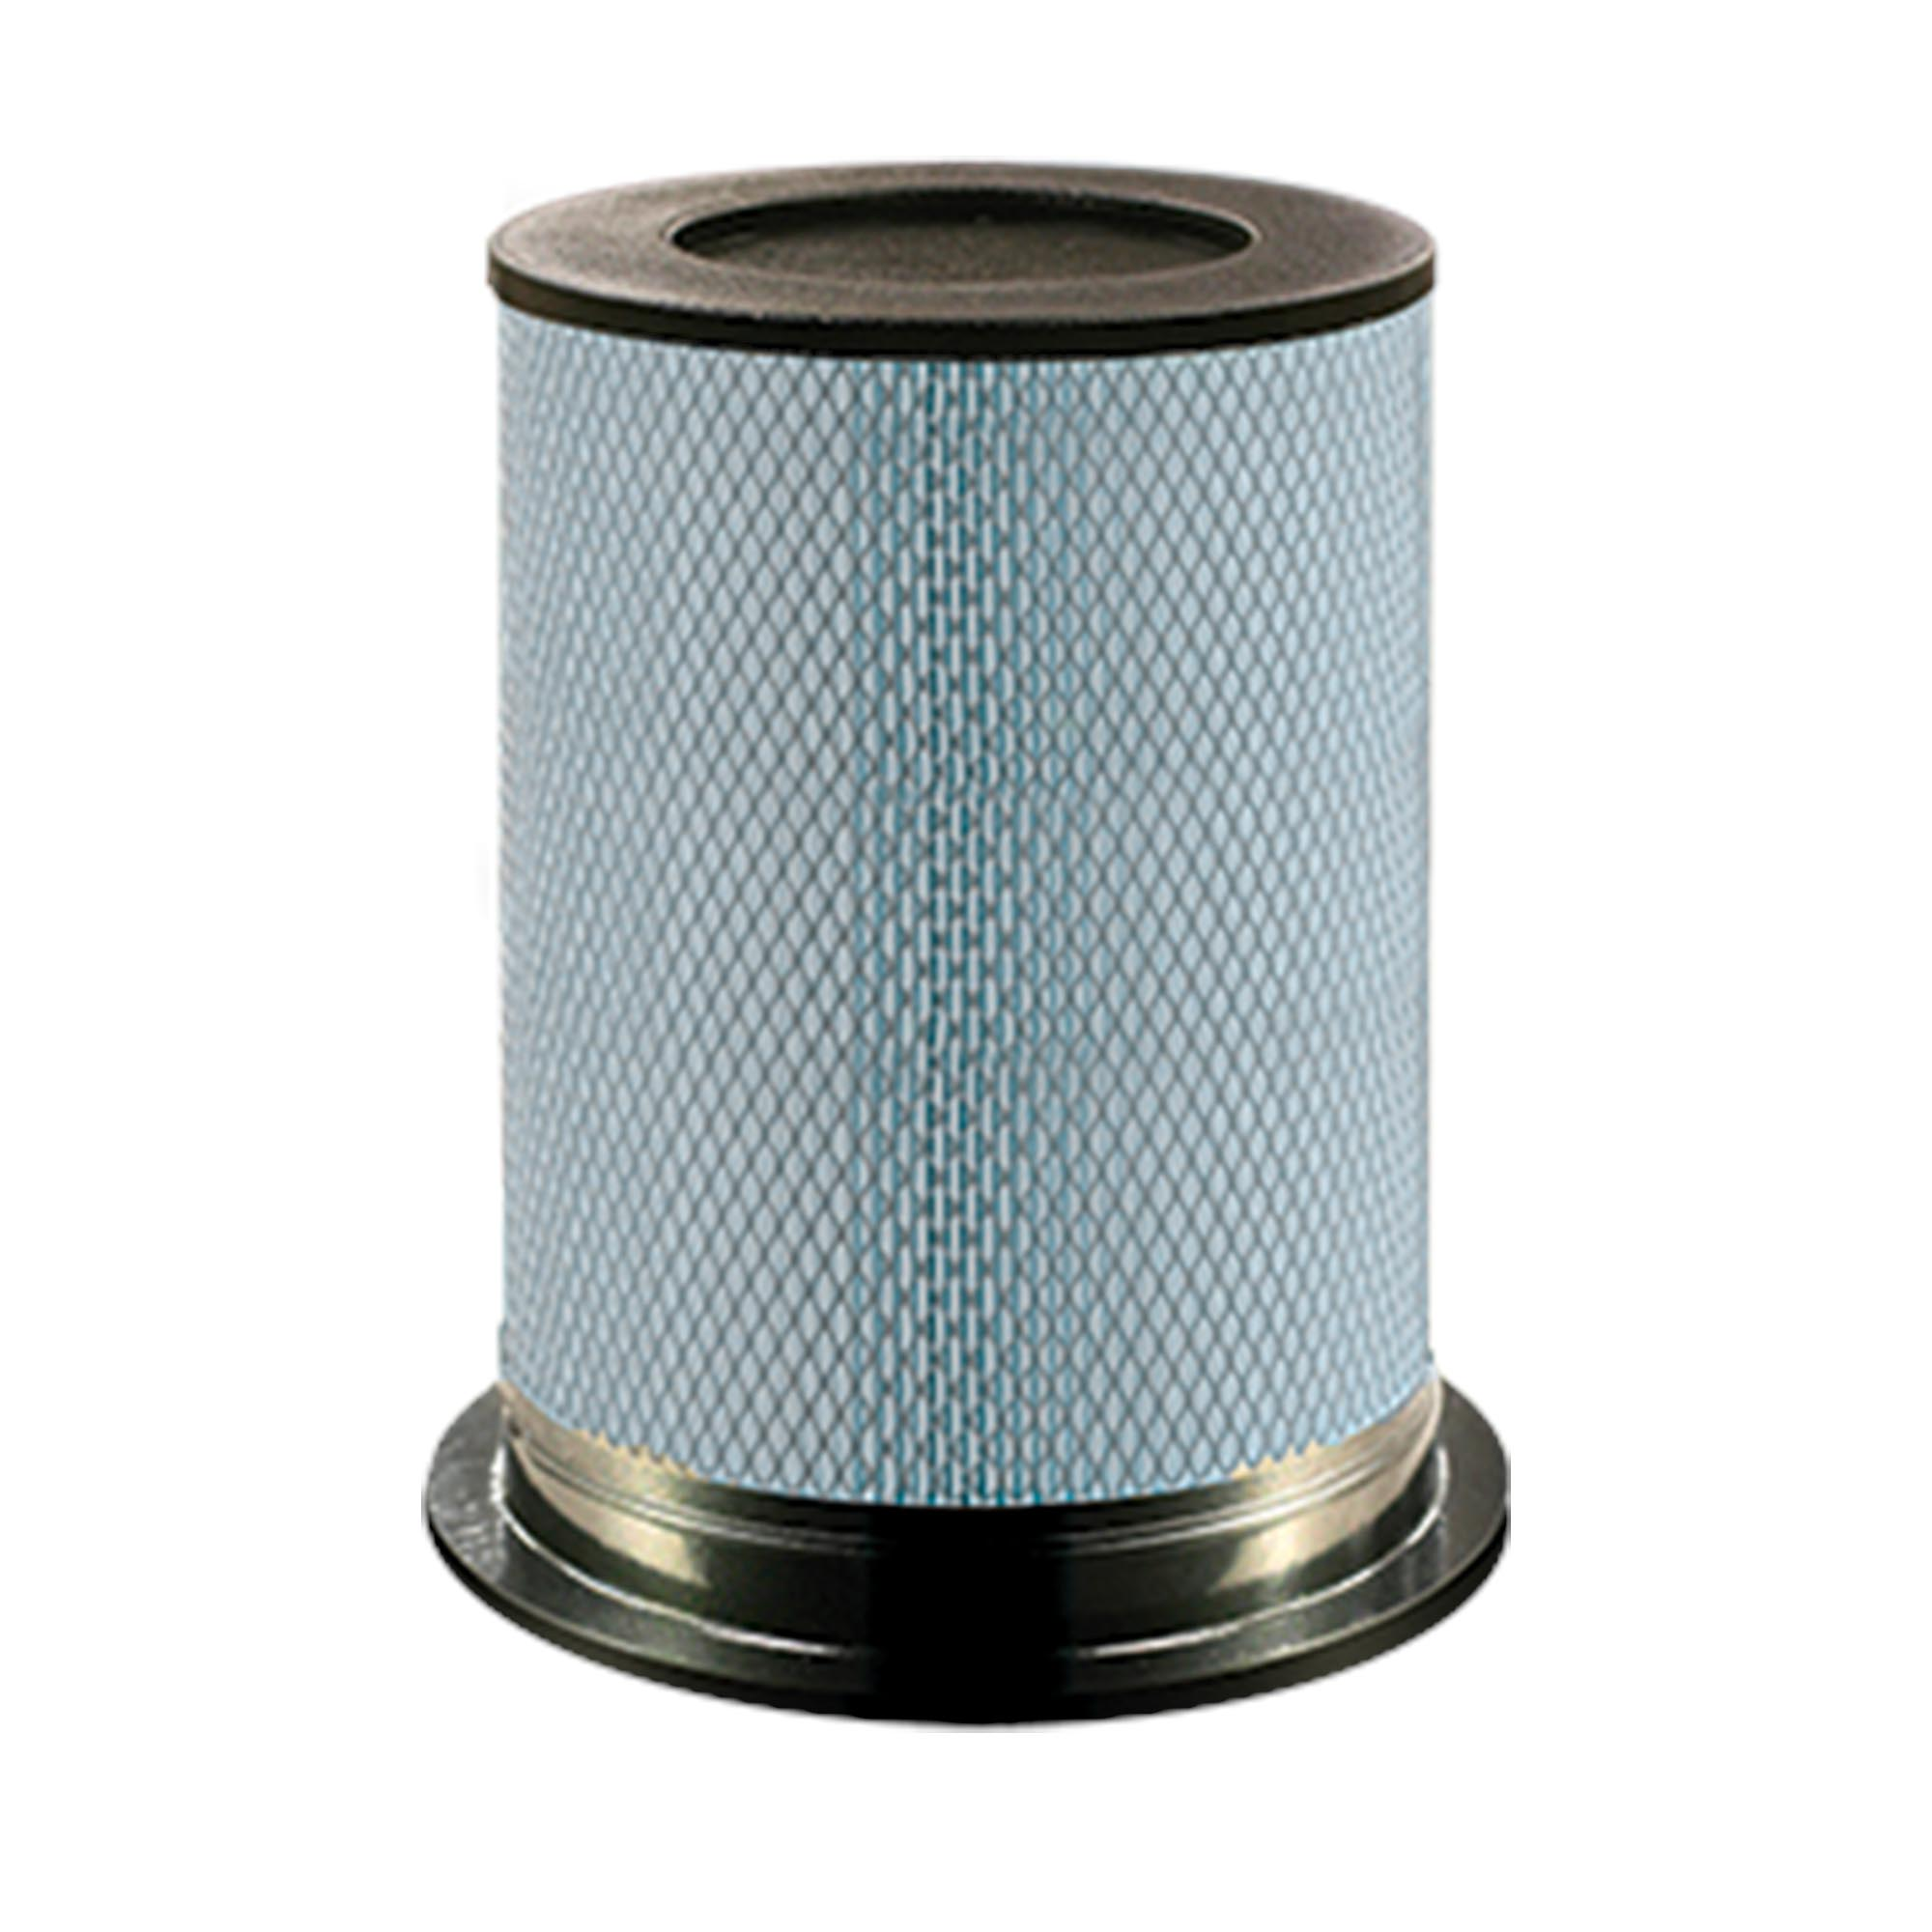 Model 902200 HEPA Filter for HEPA Vac and HEPA EasySwitch Wet-Dry Vac